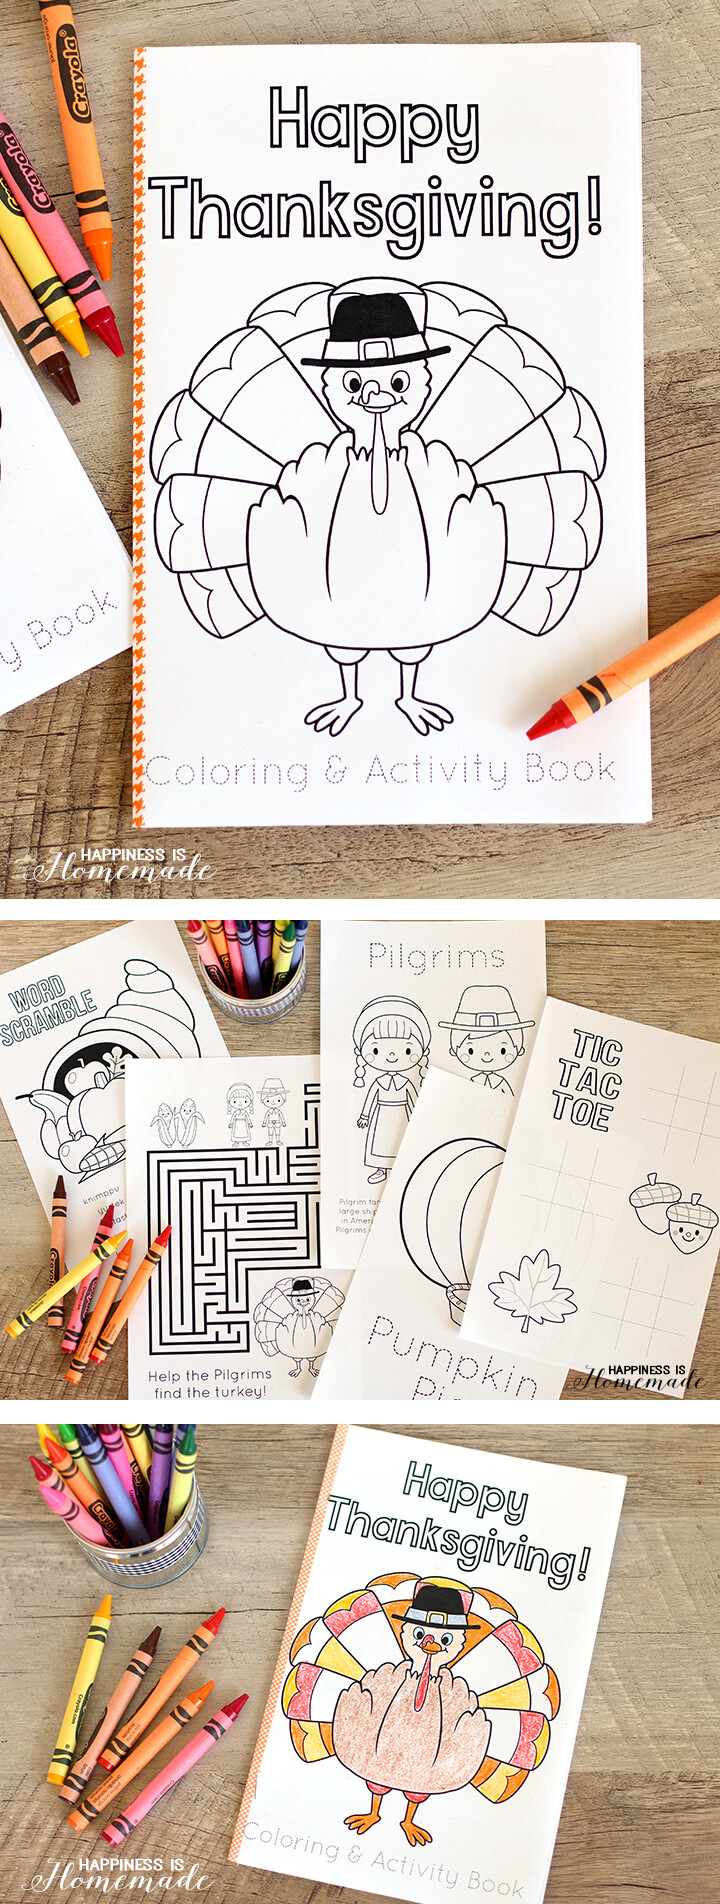 Thanksgiving Coloring & Activity Book - Happiness is Homemade | printable coloring book for kids.